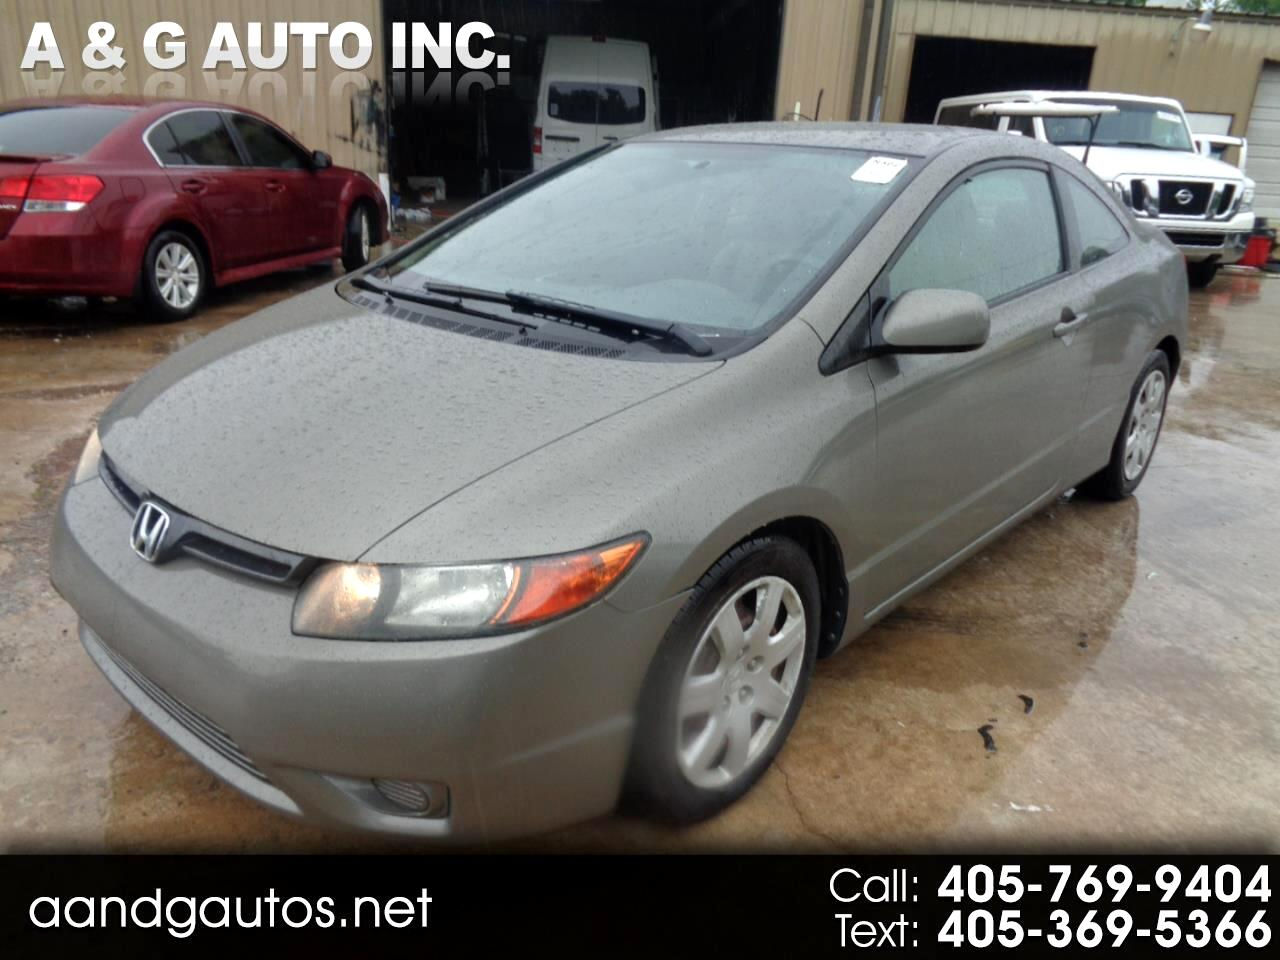 2007 Honda Civic For Sale >> Used 2007 Honda Civic In Oklahoma City Ok Auto Com 2hgfg12607h551307